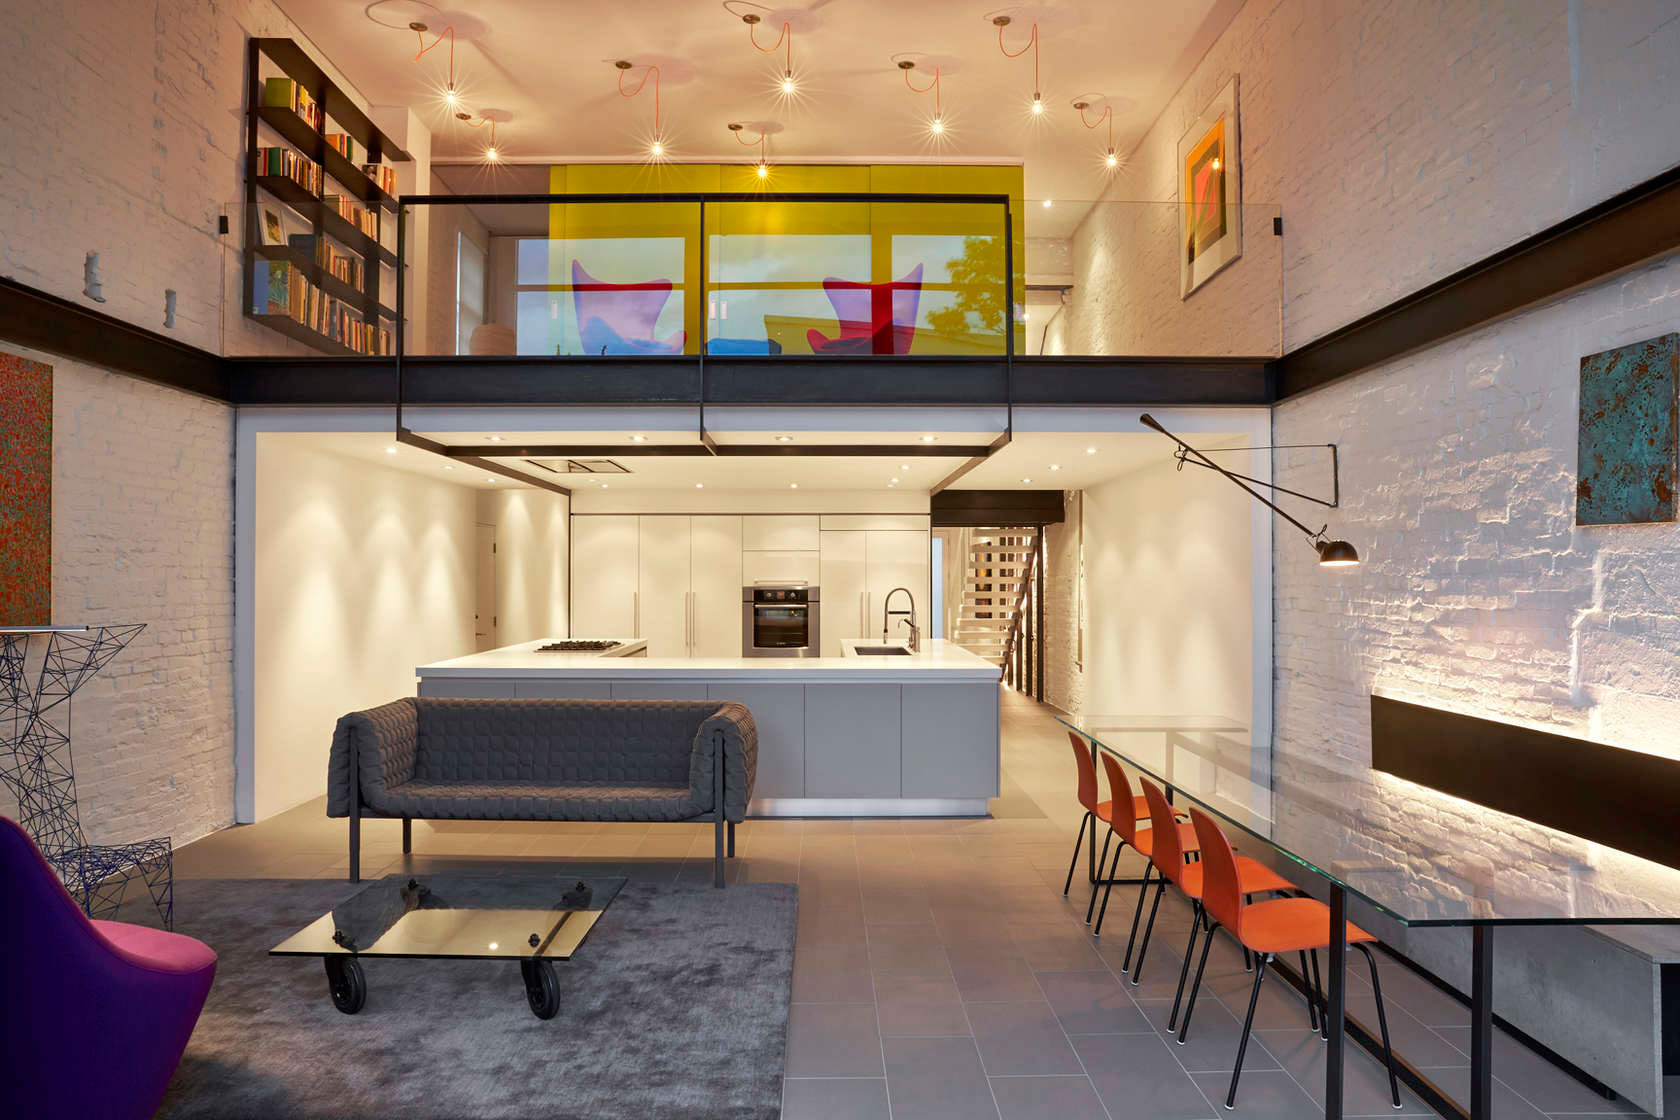 Salt and Pepper House in Washington, D.C. by KUBE Architecture-23